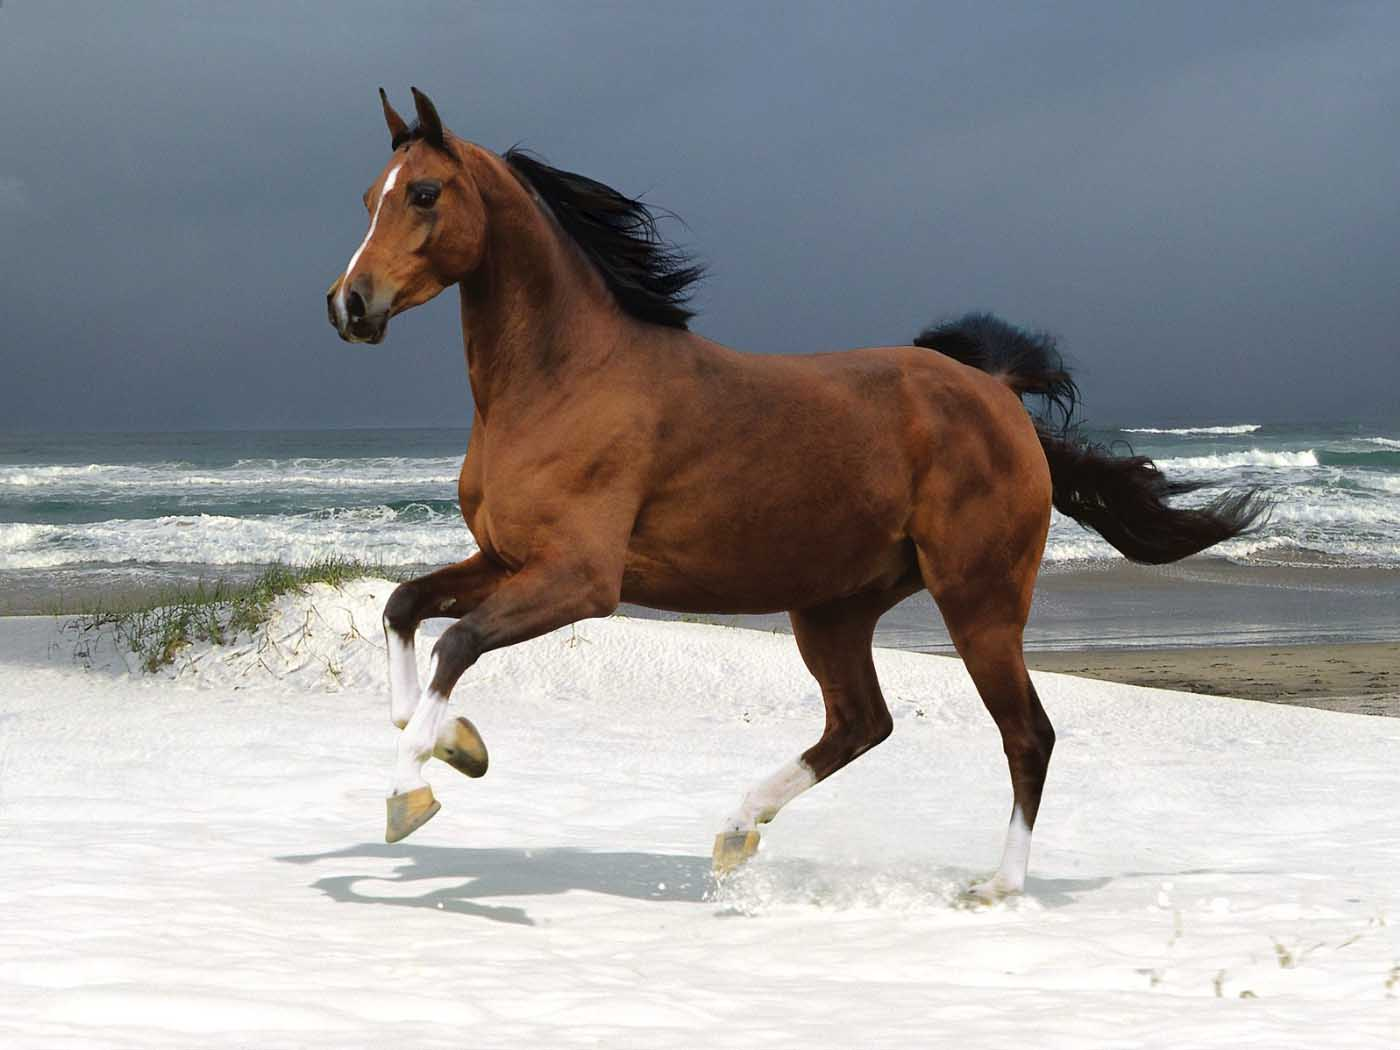 Horse Amazing Facts & New Pictures   The Wildlife